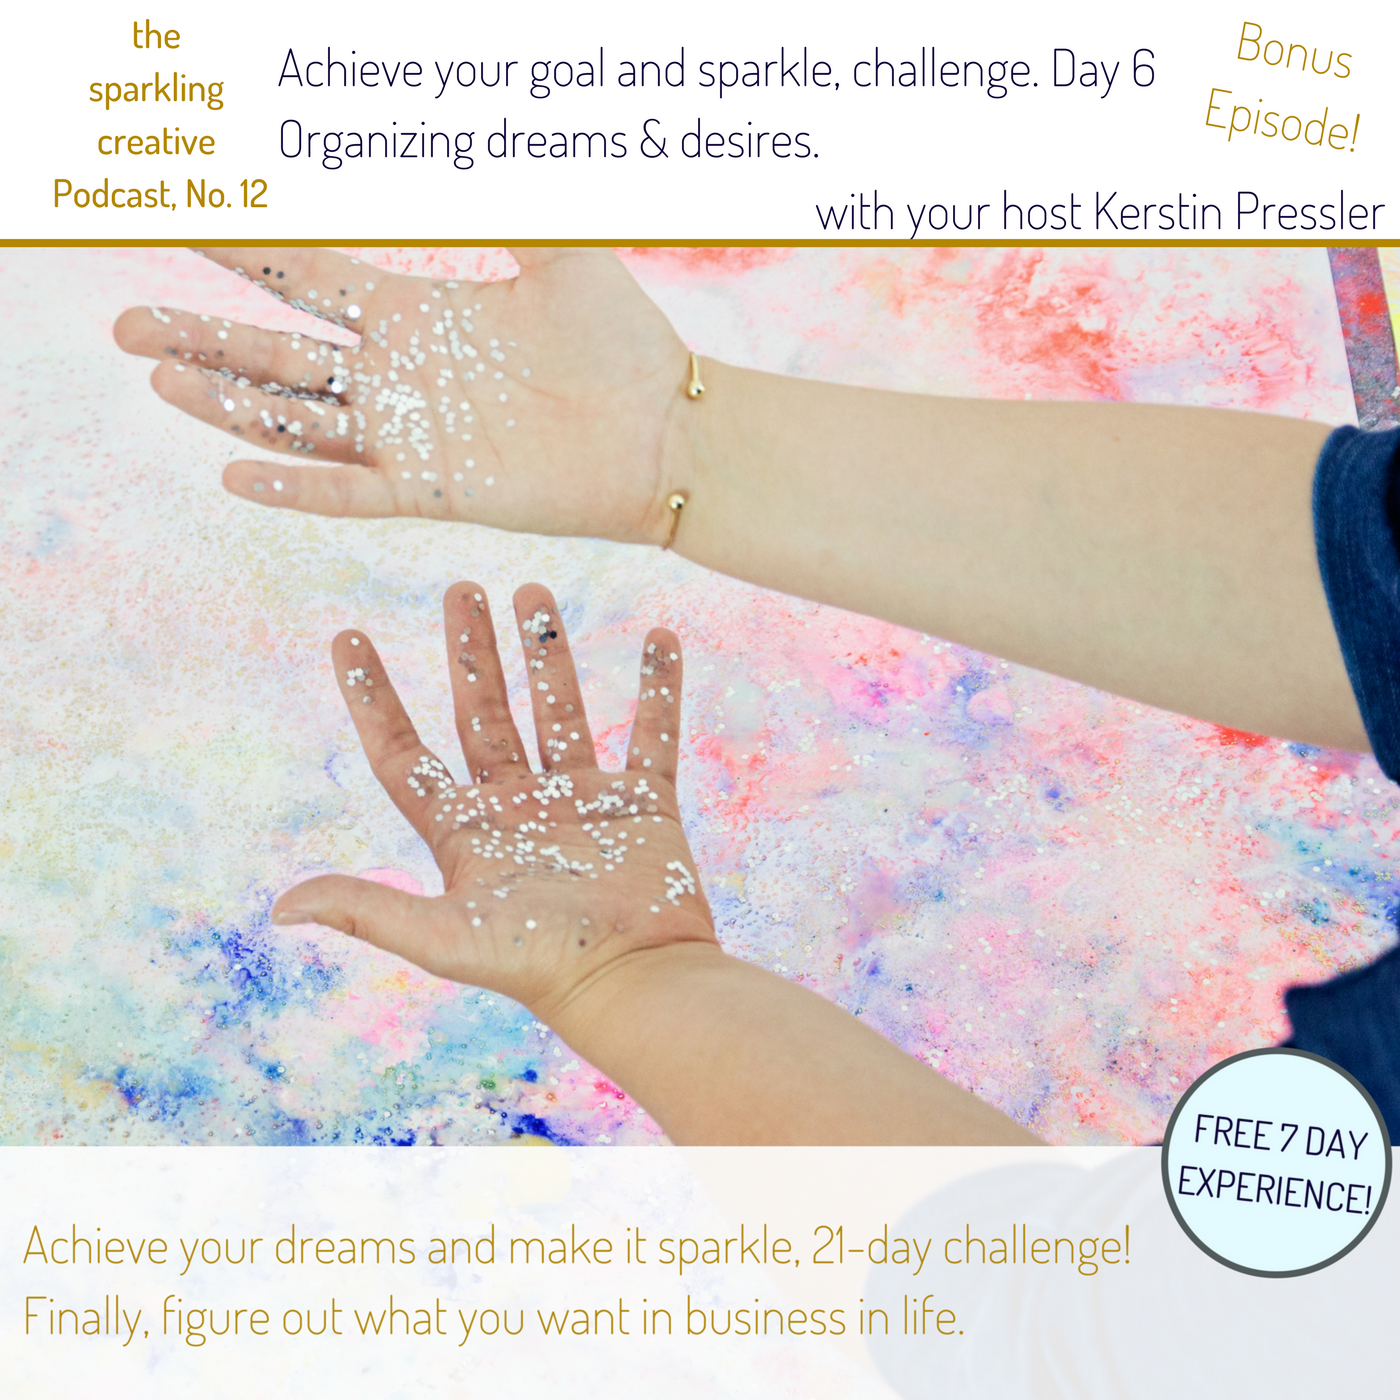 The sparkling creative Podcast, Episode 12, Organizing dreams & desires. Challenge day 6